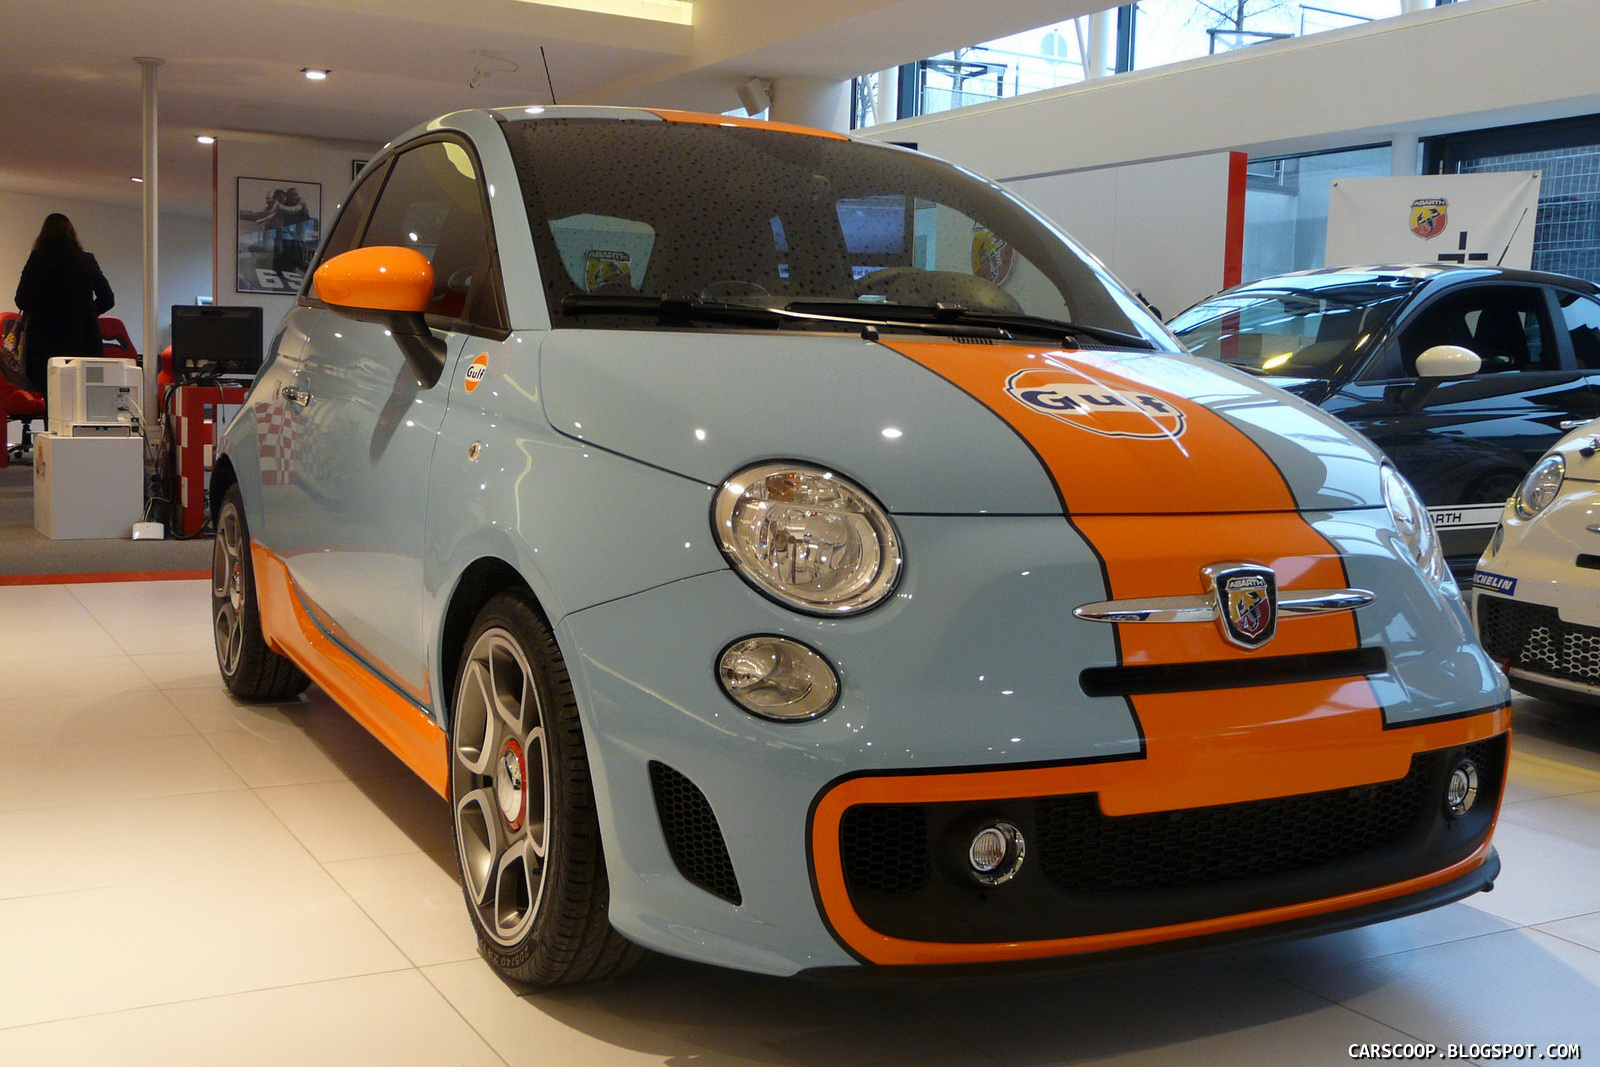 fiat abarth 500 gulf limited edition with Design Friday The Color Of Gulf Racing on Postimg 4362510 together with Pagani Huayra The Car Of Dreams Revealed In The Real World together with 2012 Noble M600 Eye Watering 650 Hp as well Archive furthermore Abarth 500 Esseesse Par Thesuperstar801 77927.